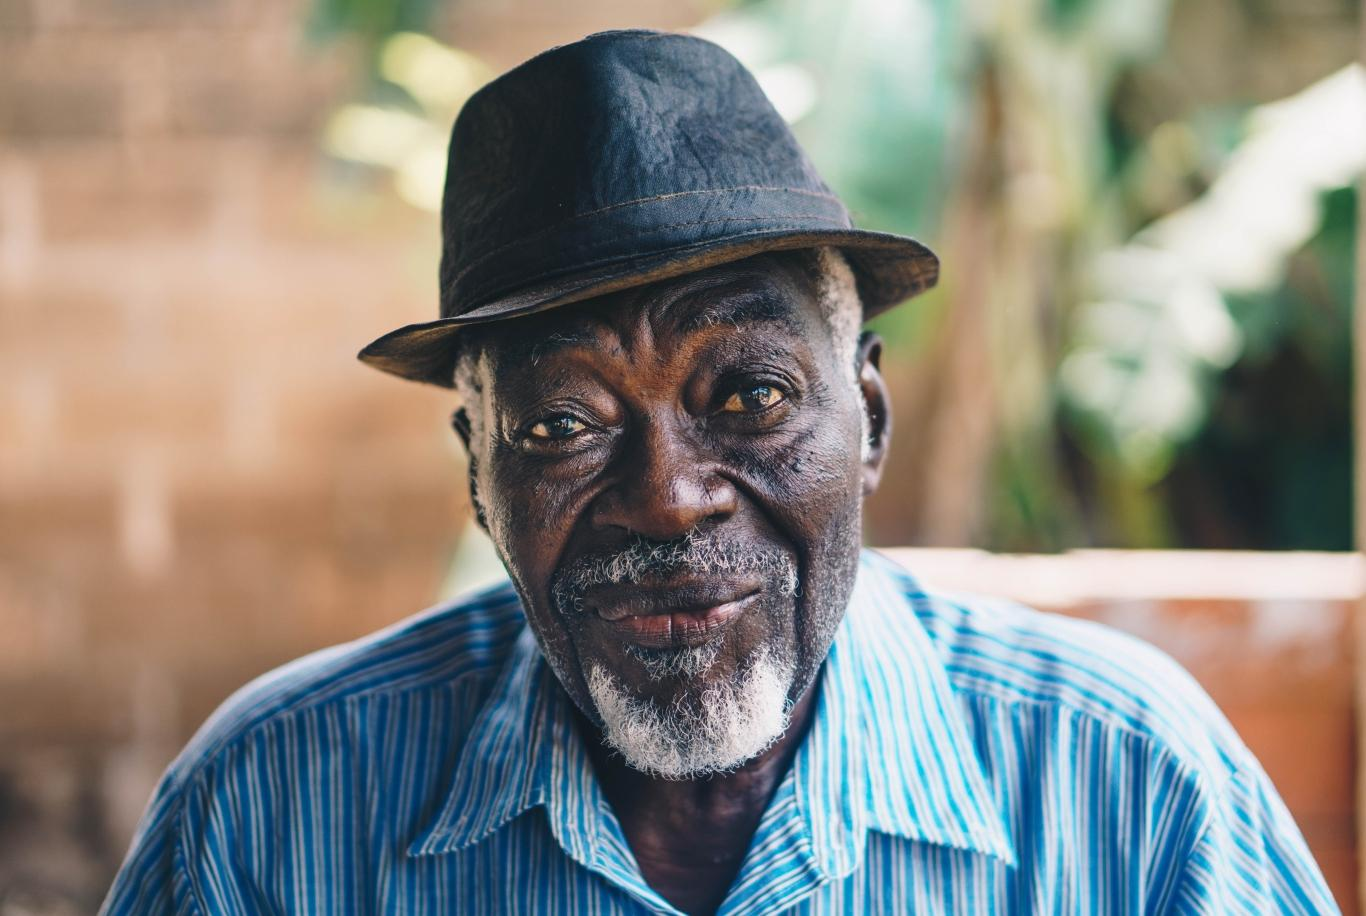 An African American elderly man wearing a hat smiles from his seat on his porch